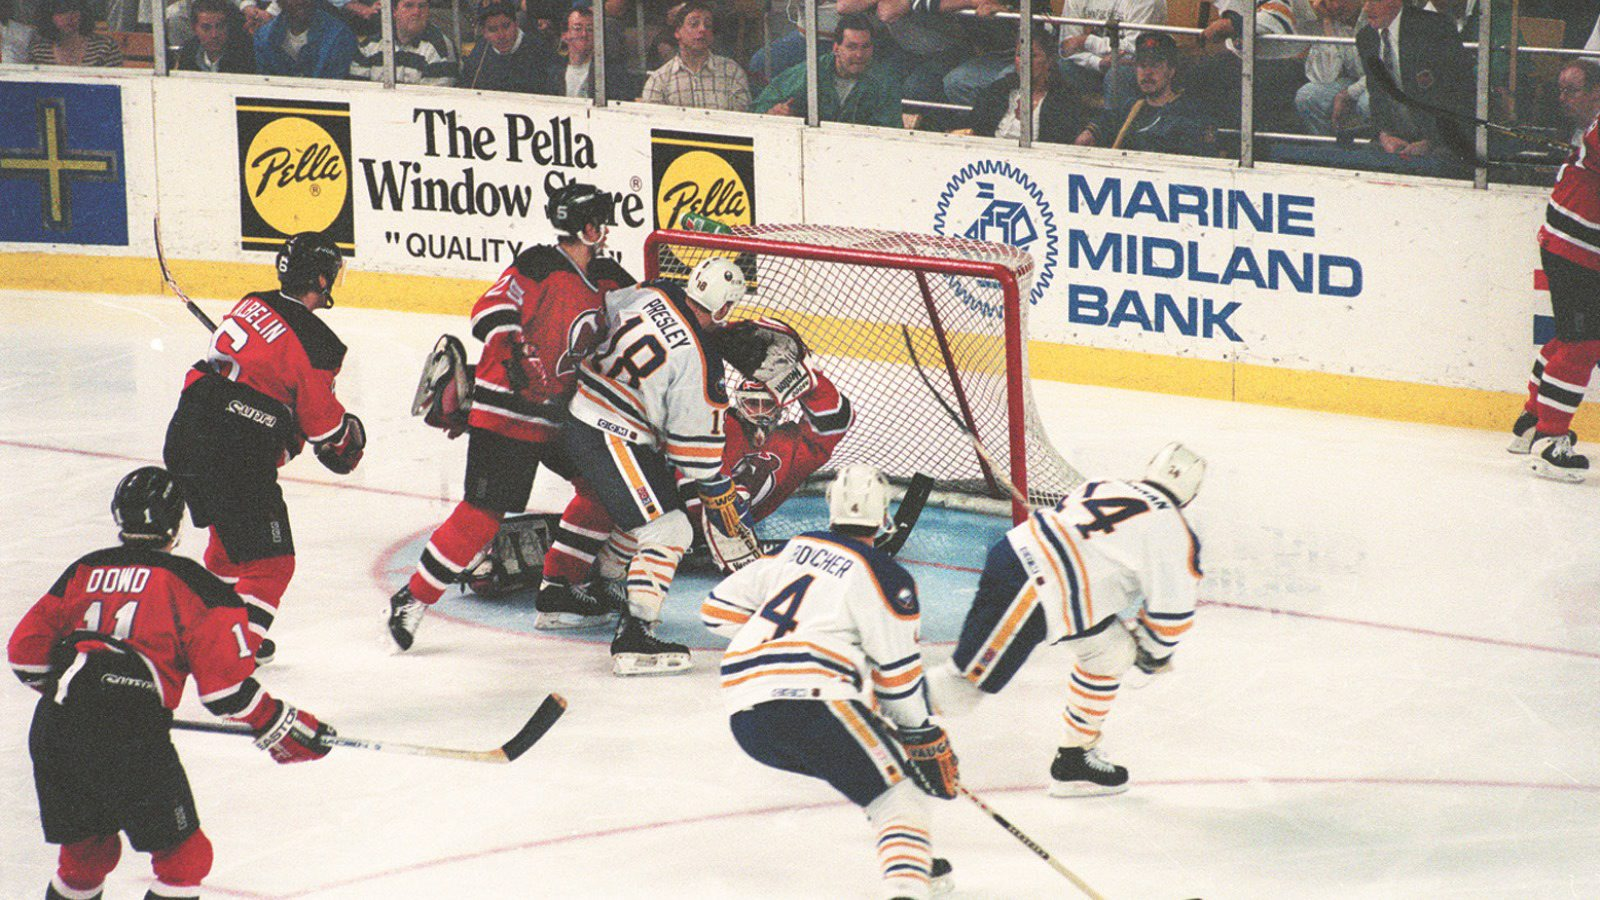 Dave Hannan scores the game-winning goal in the fourth overtime to win a playoff game against the New Jersey Devils 1-0 in Memorial Auditorium on April 28, 1994. (Buffalo News file photo)